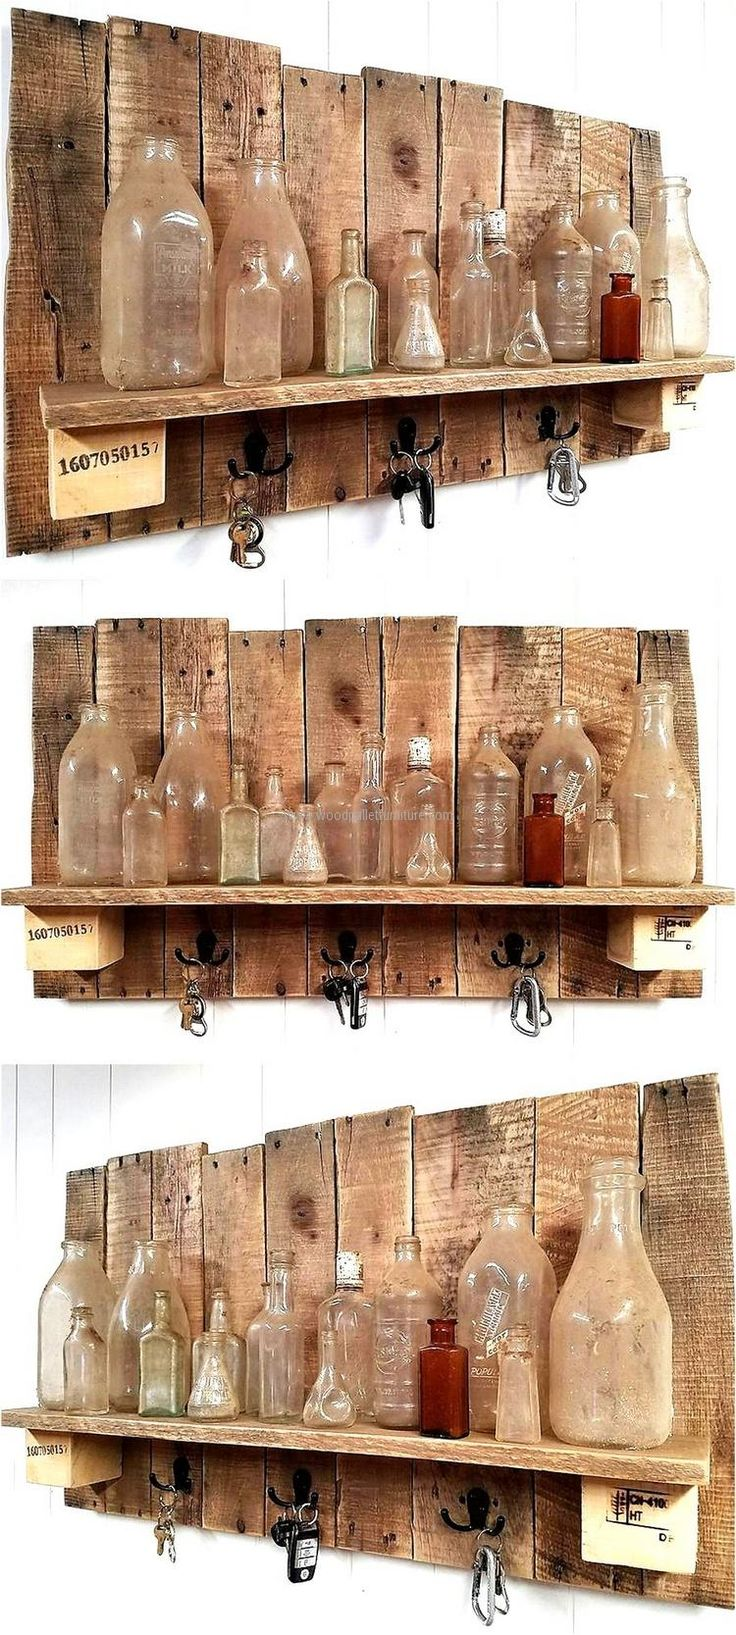 Reclaimed wood pallet rustic shelf plan works well for the homeowner who have a small home, but many items to store or needs an idea to decorate the home. This idea allows hanging the keys and other items to avoid the mess in the room, it also reduces the chances of missing the items.